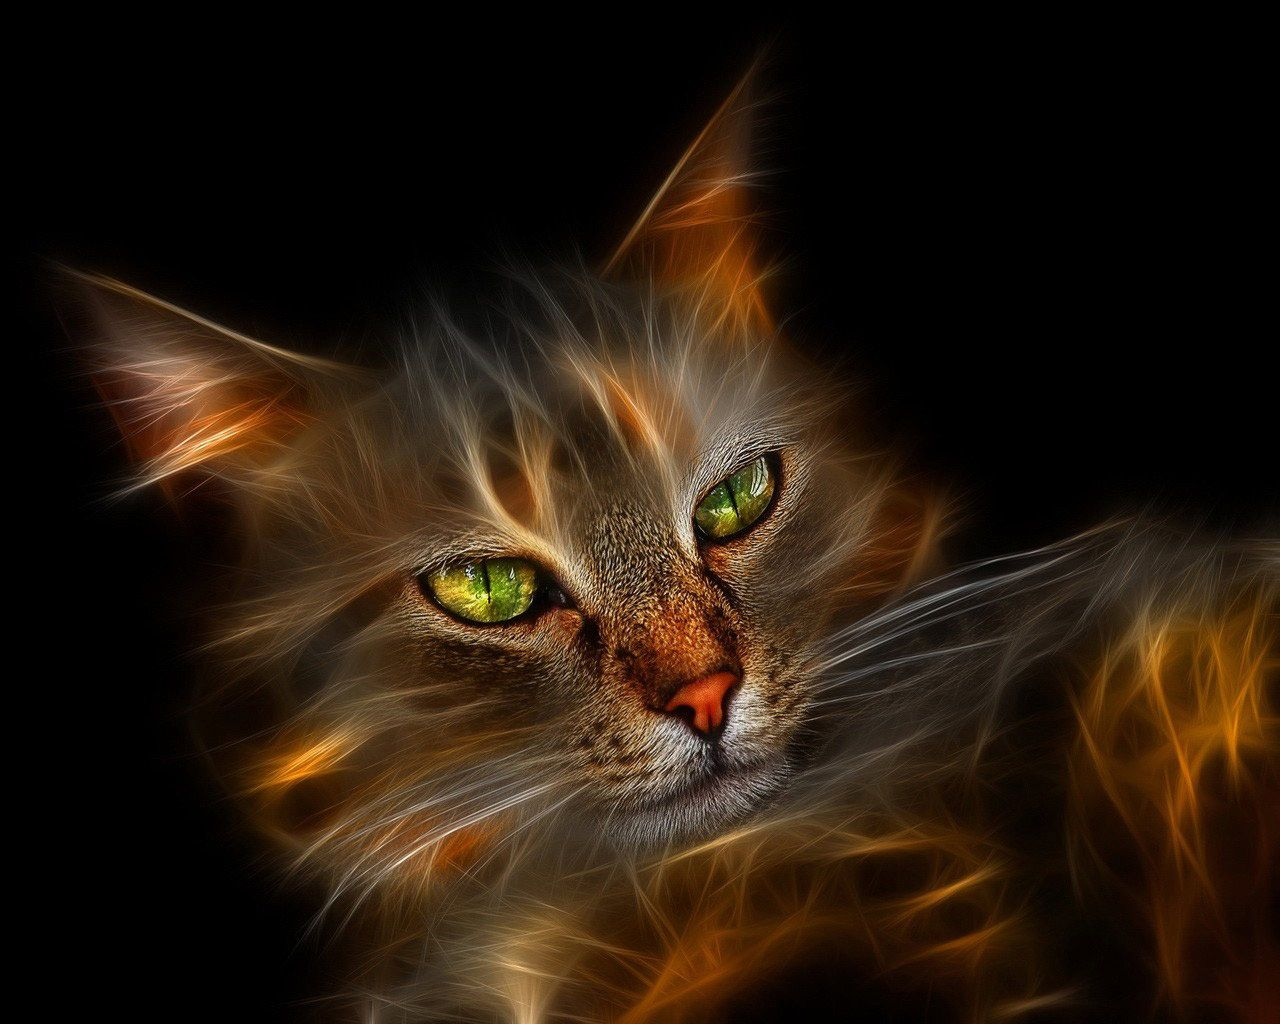 Cat Eyes Neon cat, Cat art, Pretty cats